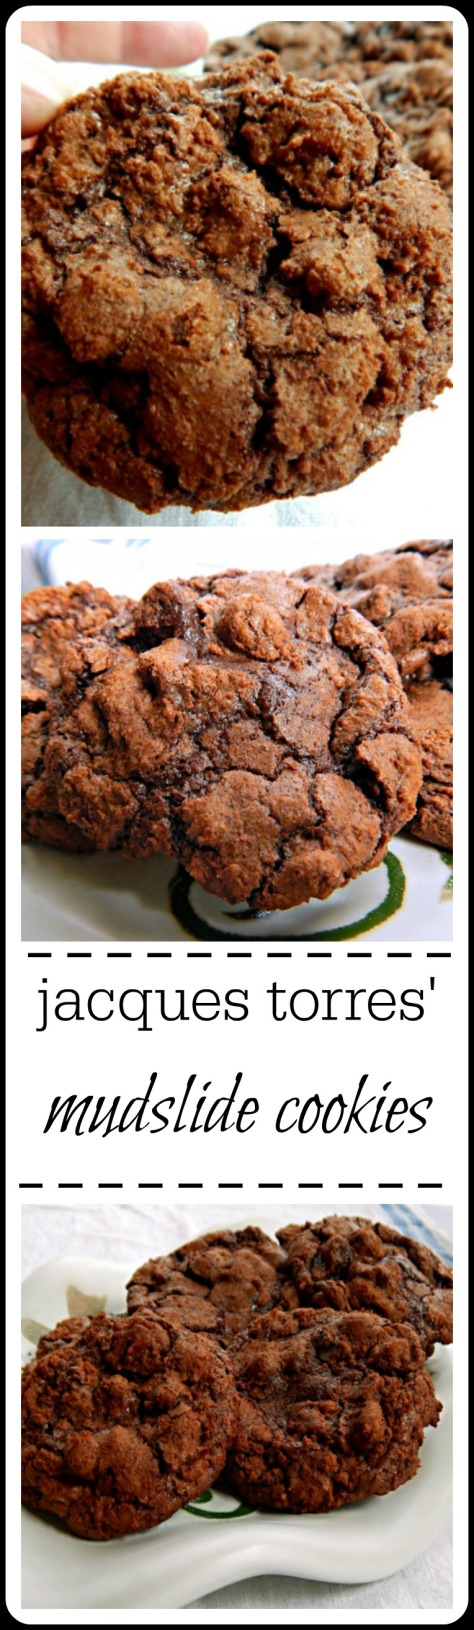 Jacques Torres' Chocolate Mudslide Cookies. From the Master baker himself, you just won't want to stop eating these cookies!